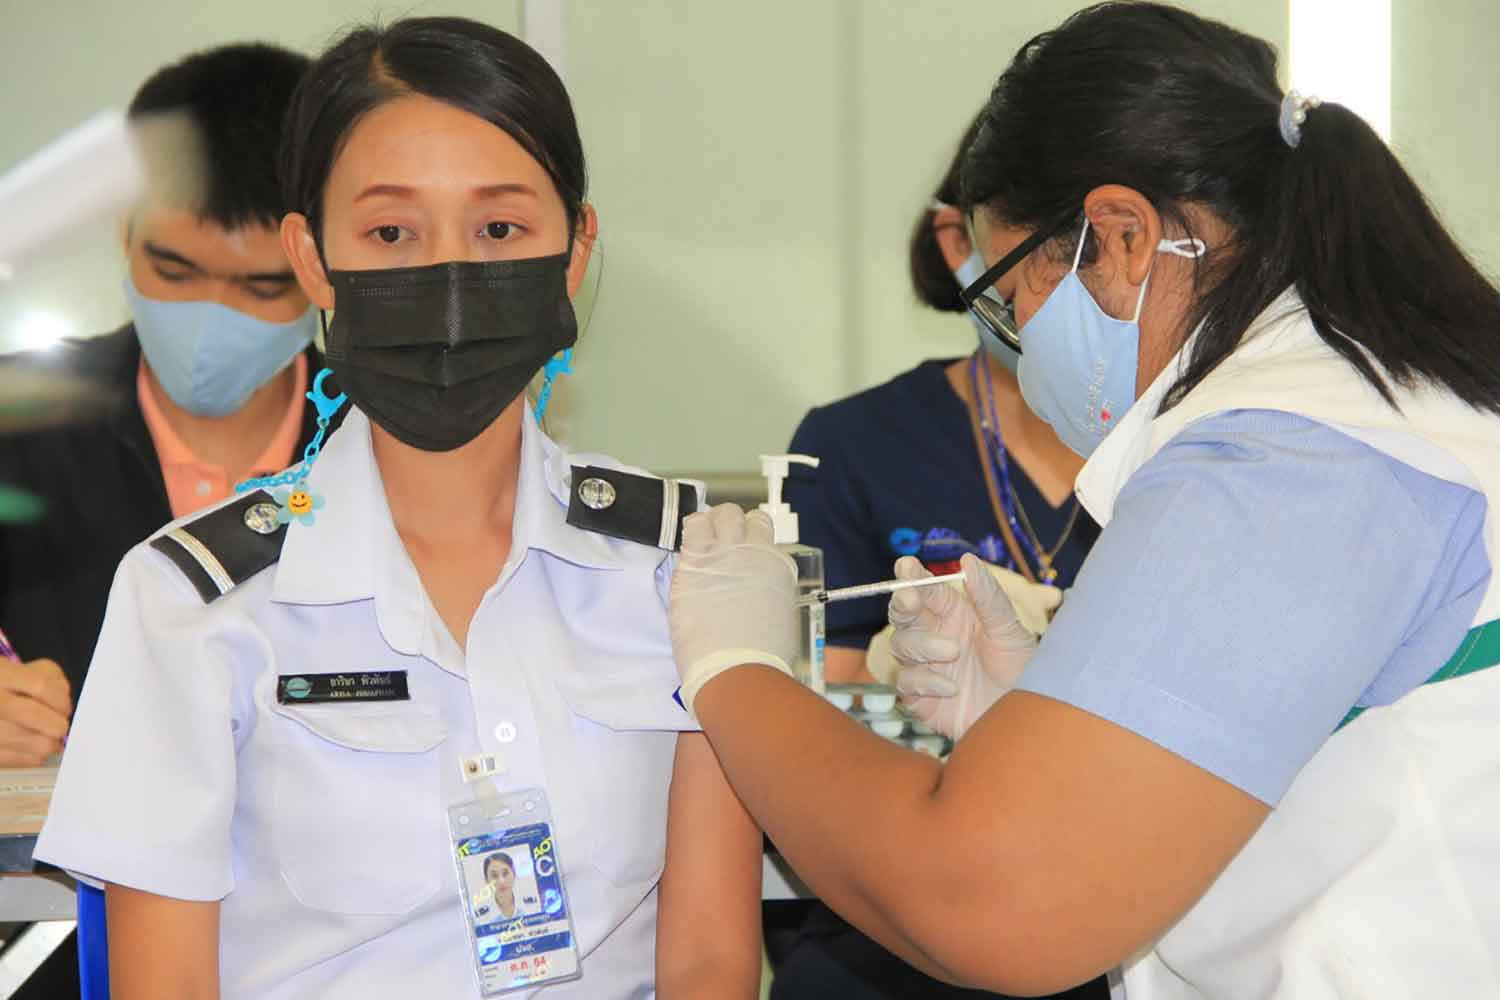 A Suvarnaphumi airport employee receives Sinovac's Covid-19 vaccine on Monday. The airport aims to inoculate all staff by the end of next month. (Photo: Sutthiwit Chayutworakan)